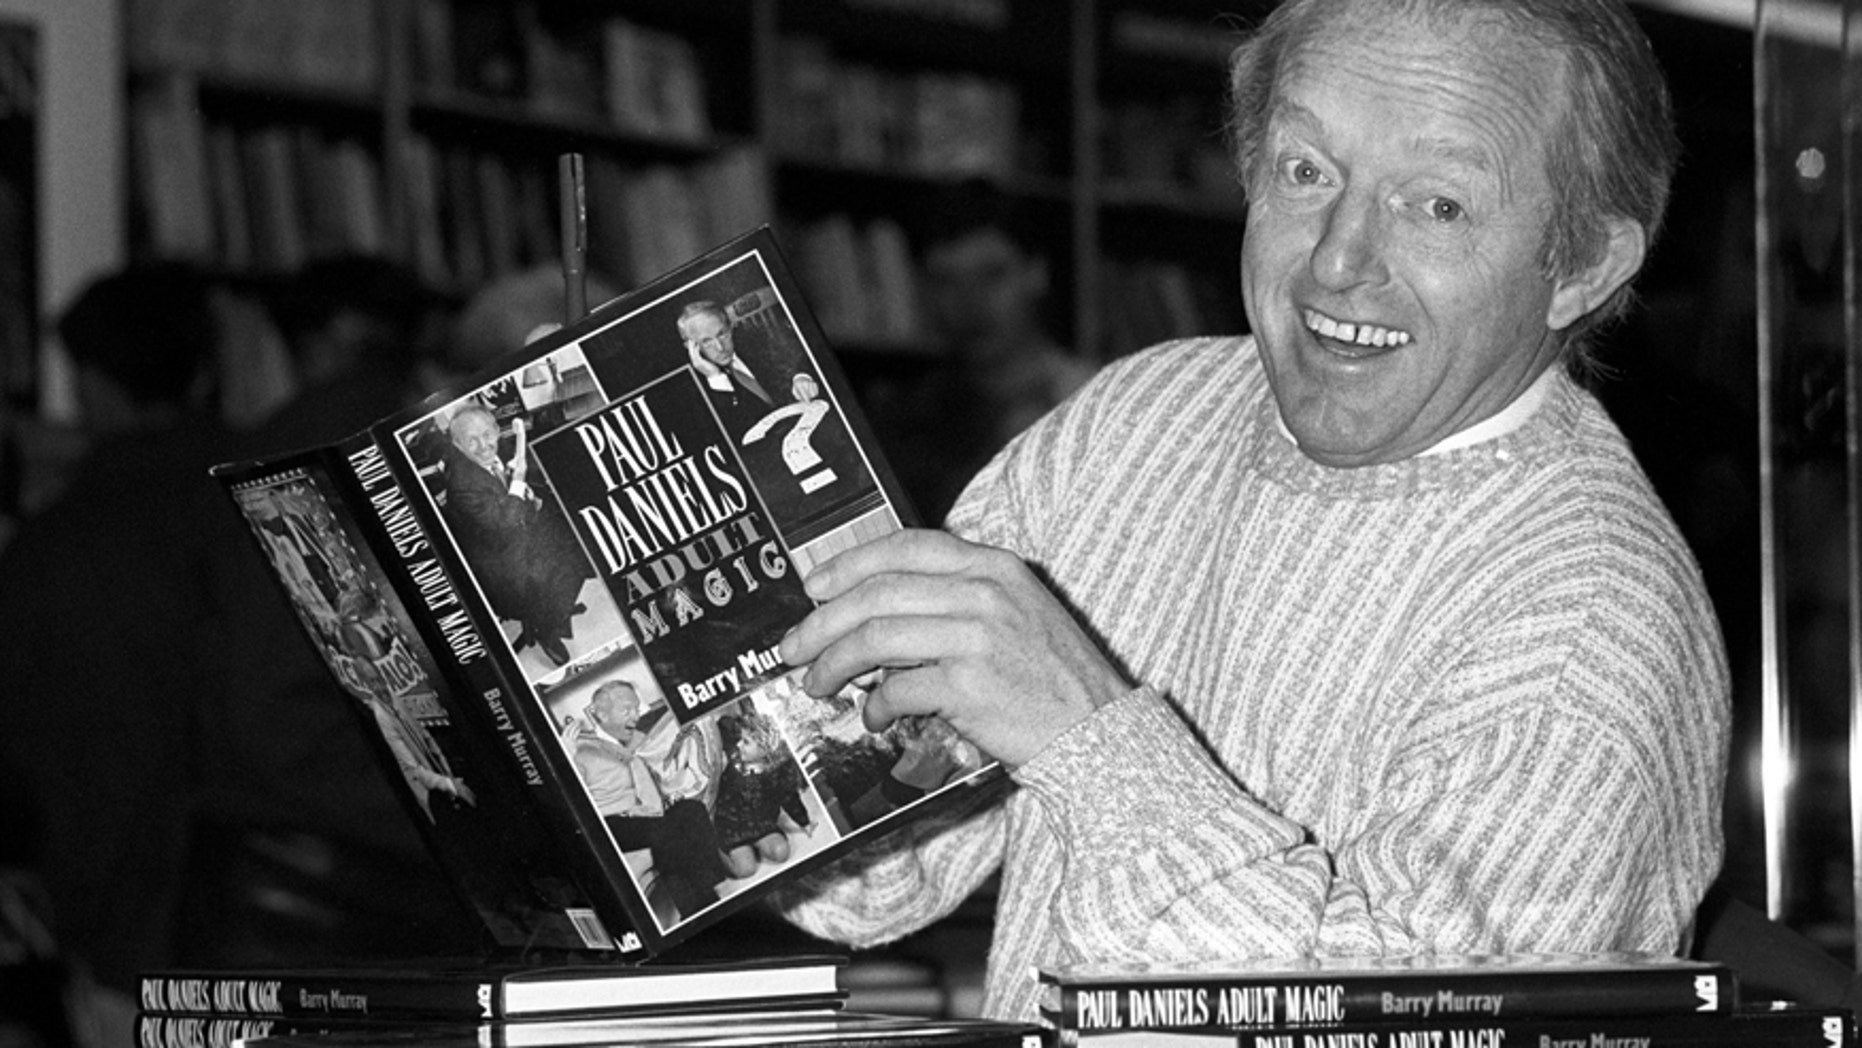 This is a Dec. 2, 1989 file photo of British magician Paul Daniels as he holds with a copy of his book 'Adult Magic' at Whiteleys book shop in London.